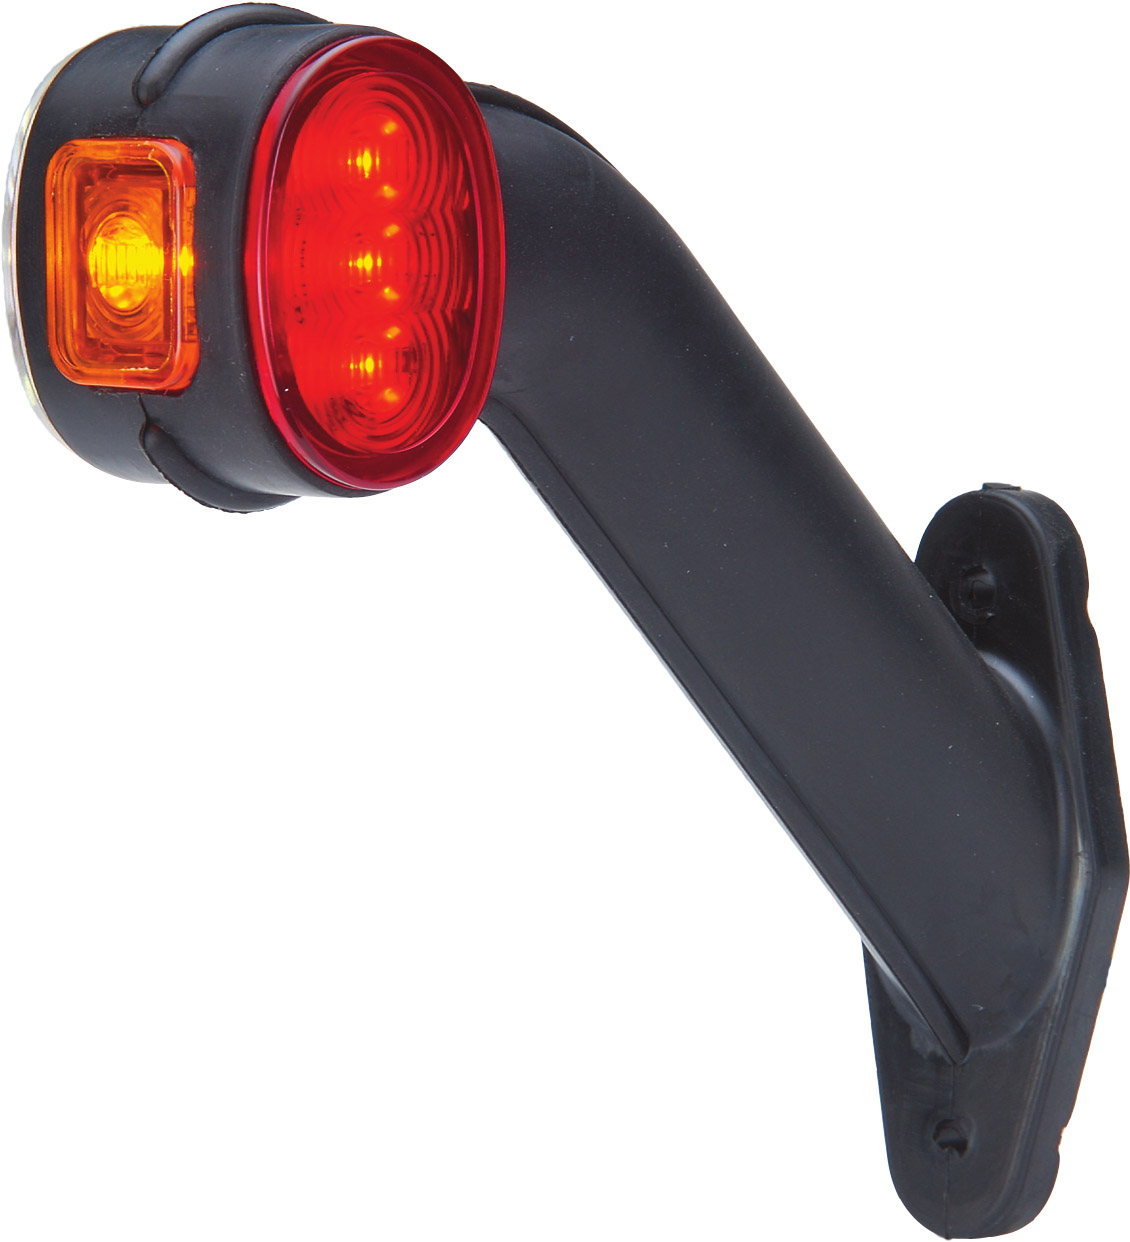 LAP 26550 Series Flexible Marker Lamp